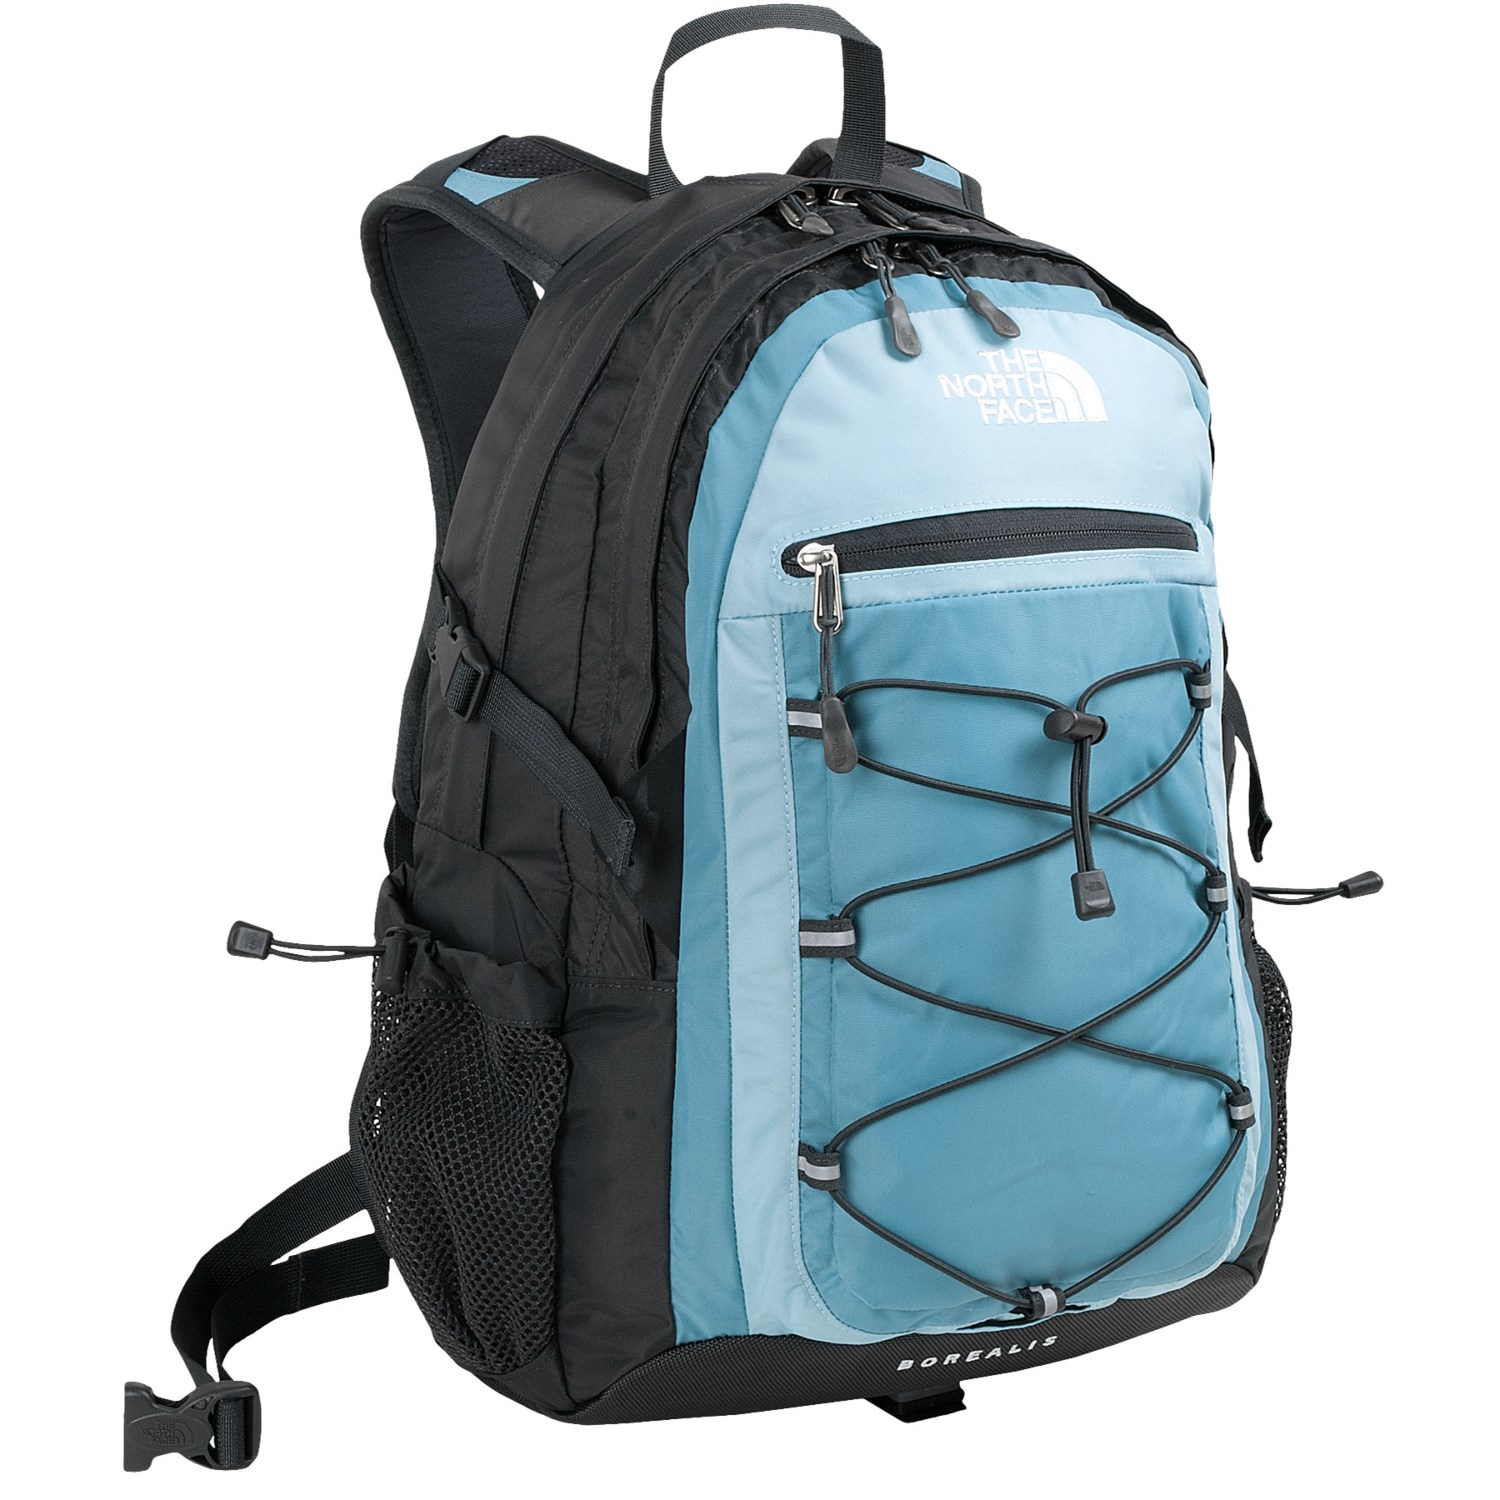 The North Face Borealis Backpack (For Women) 4940C